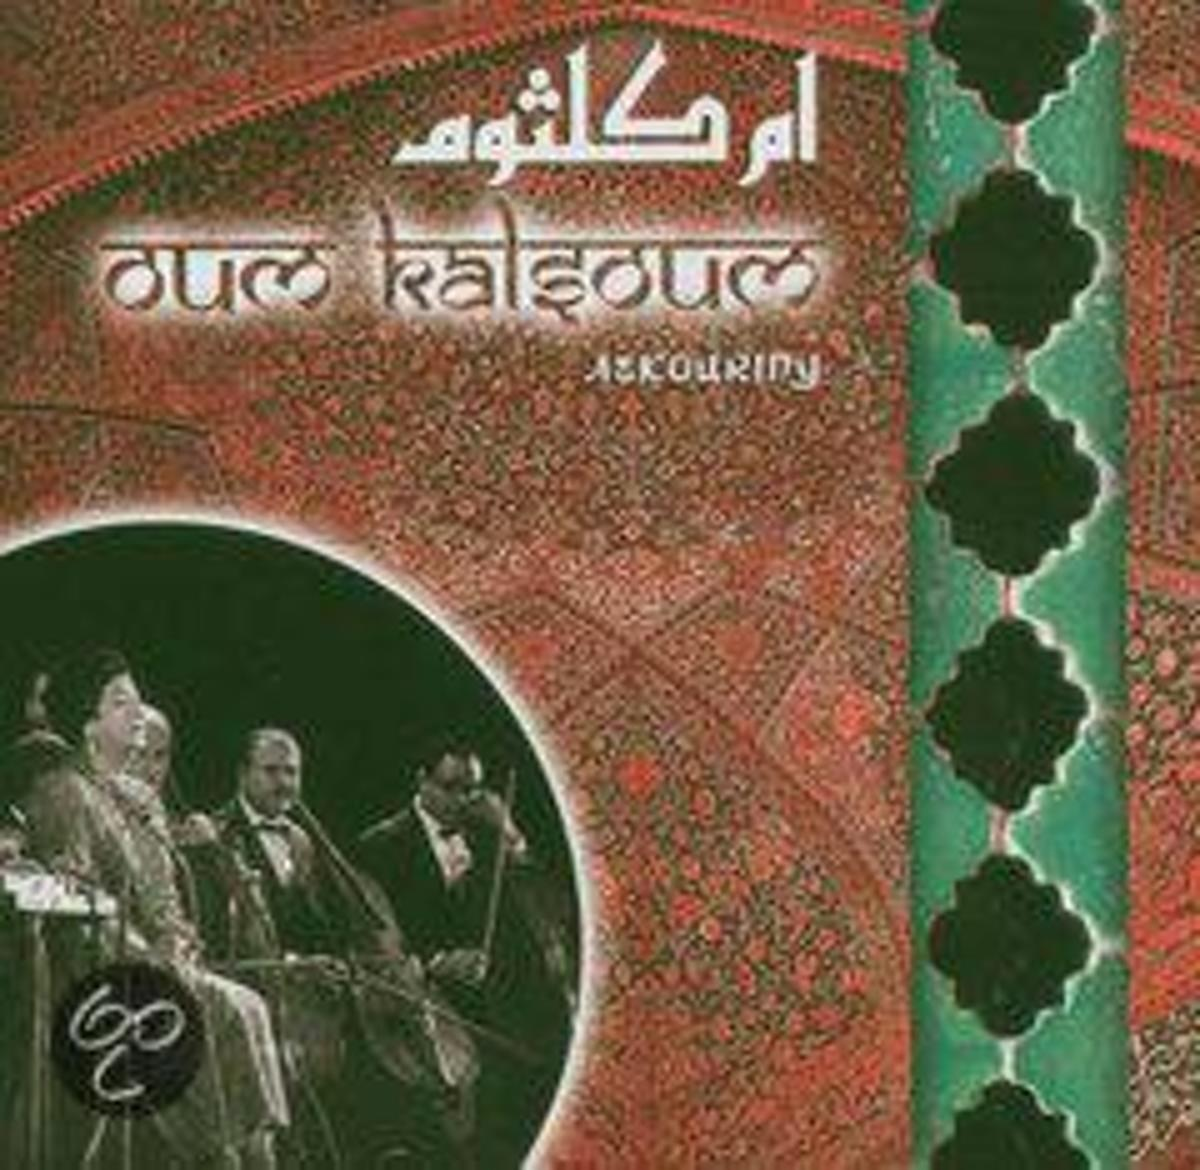 Oum Kalsoum: Azkouriny MW00039541  Music & Words World Music CD  Muziek Egypte